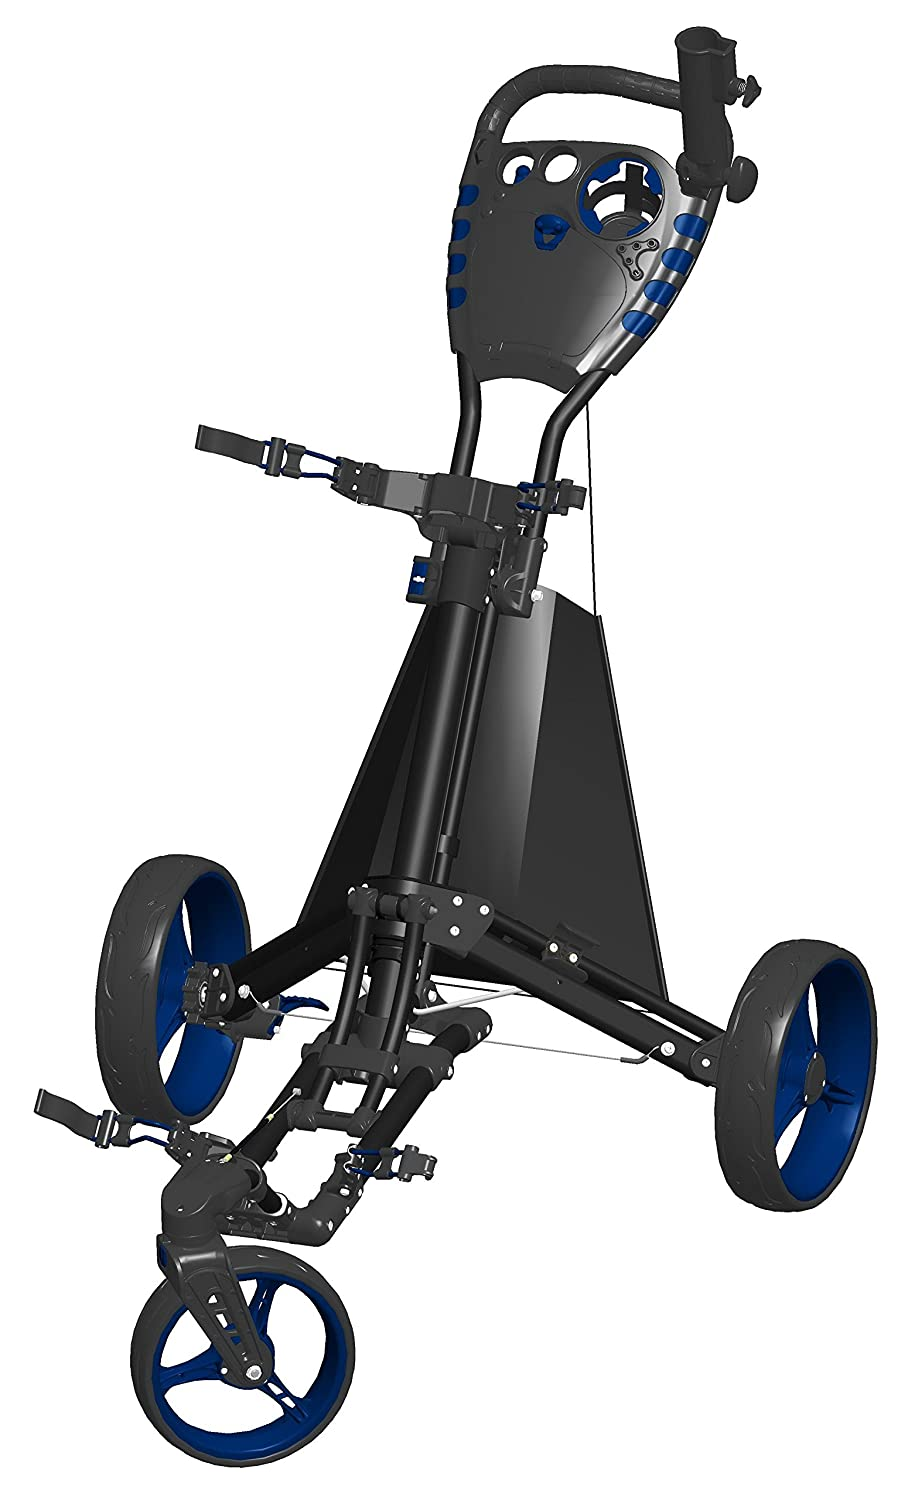 Spin It Golf Products Easy Drive Golf Push Cart, Black Blue